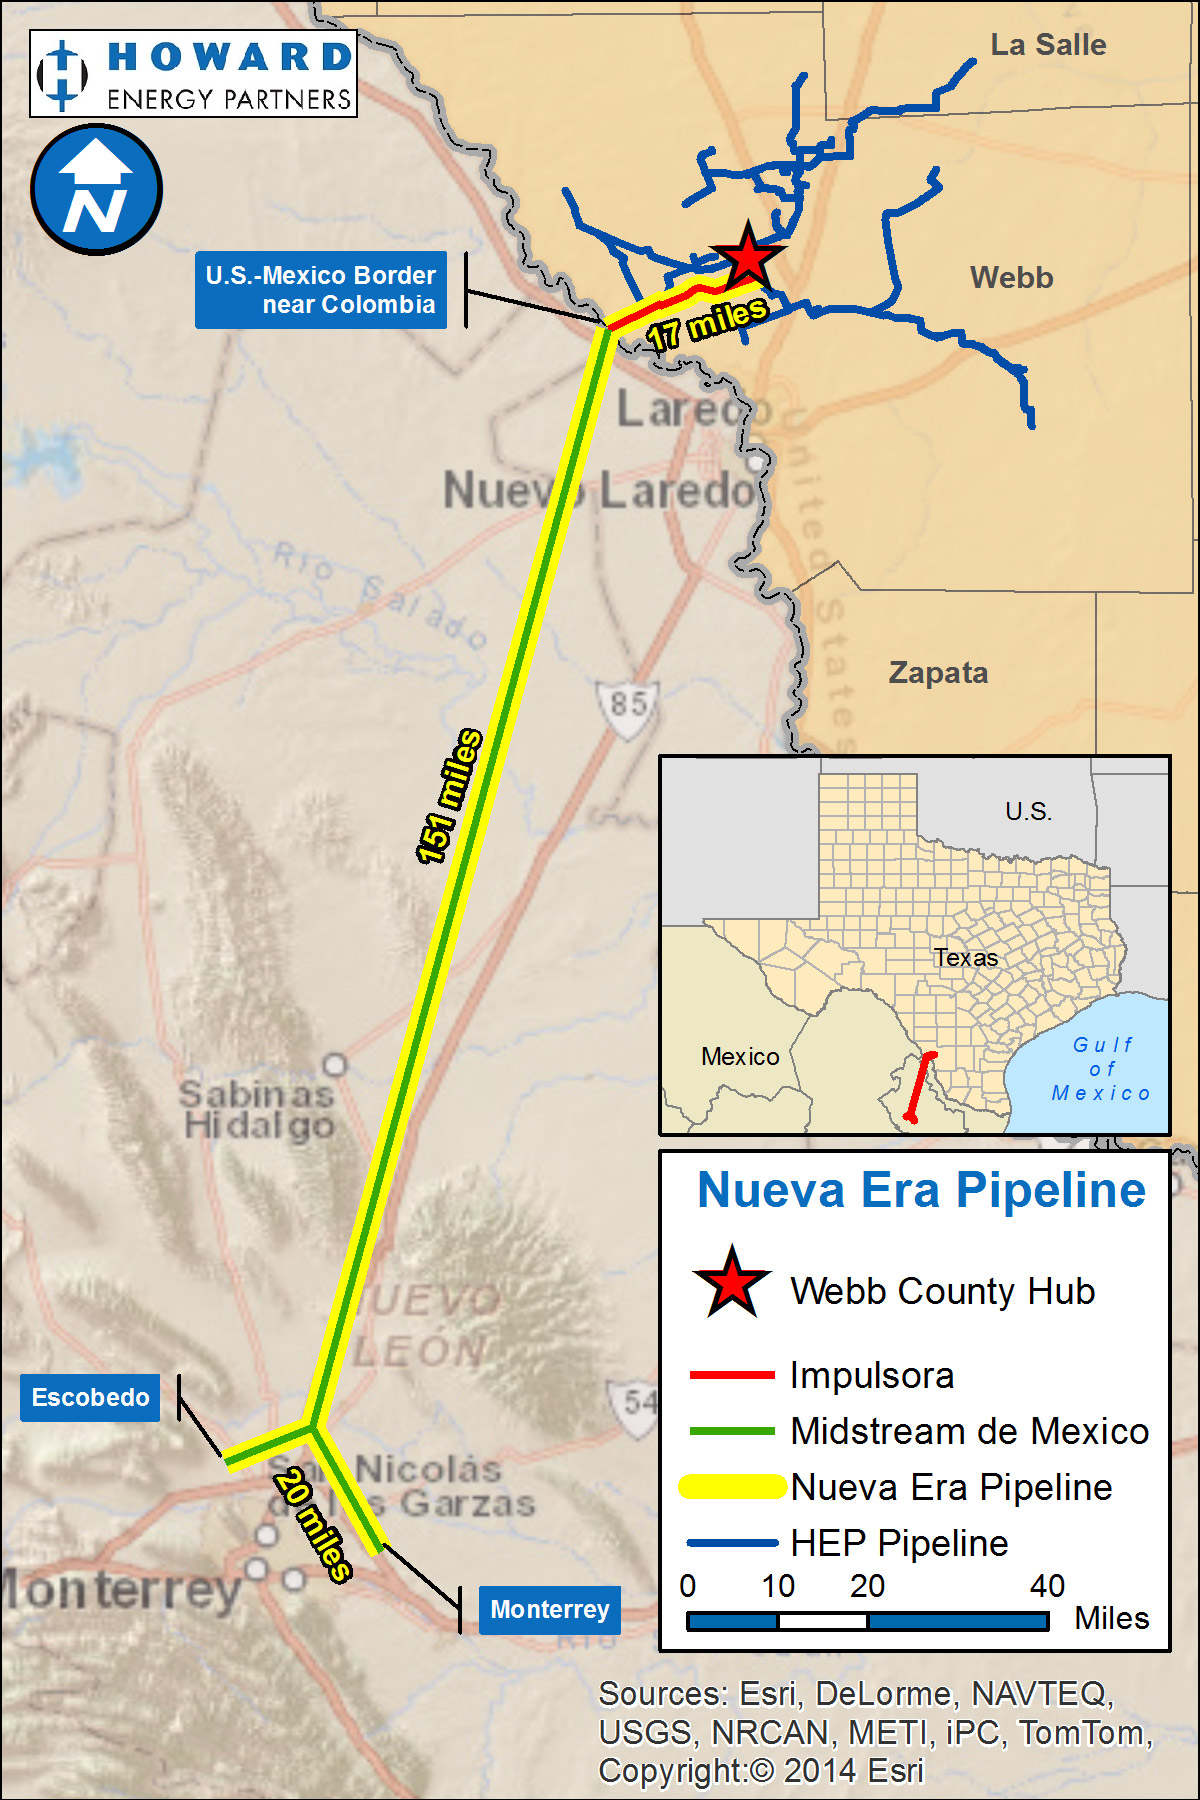 Nueva Era Pipeline system map